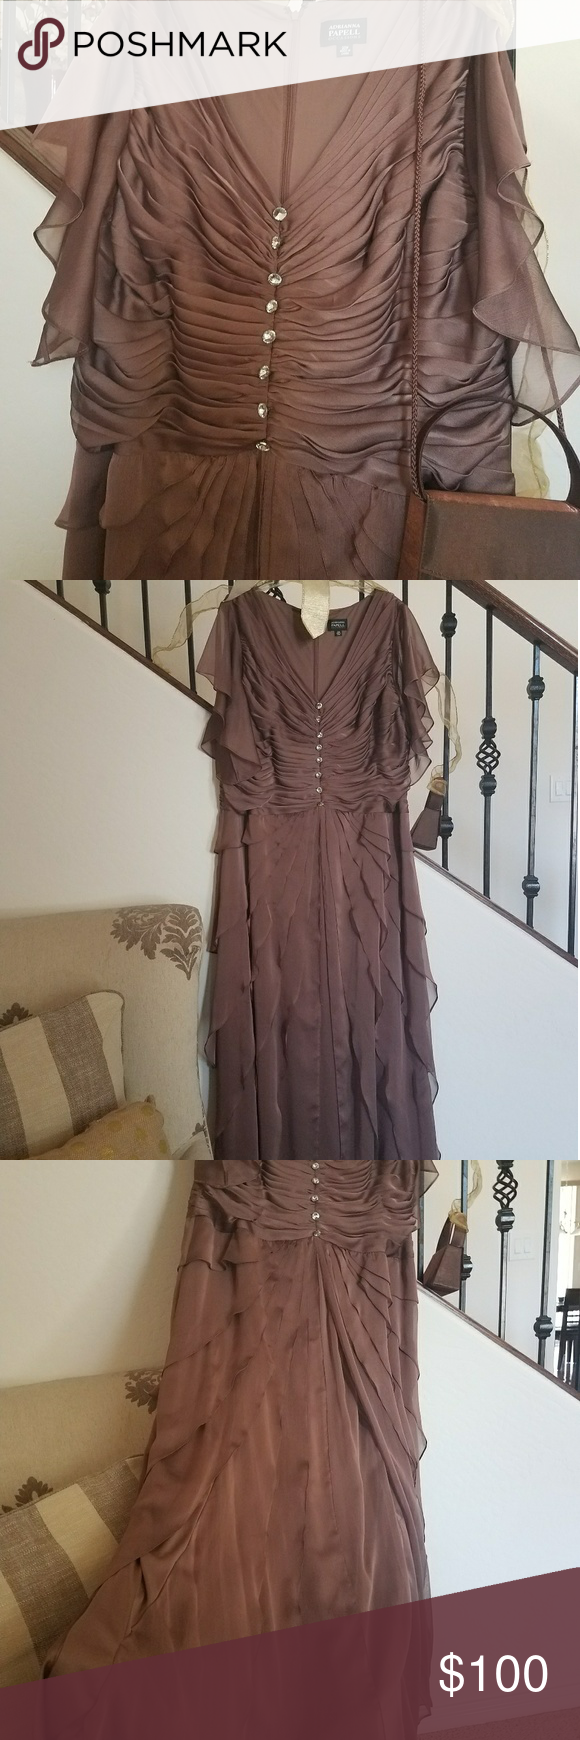 da6708a5352 Selling this Mother of the Bride Gown on Poshmark! My username is   amaperfect 50.  shopmycloset  poshmark  fashion  shopping  style  forsale   Adrianna ...